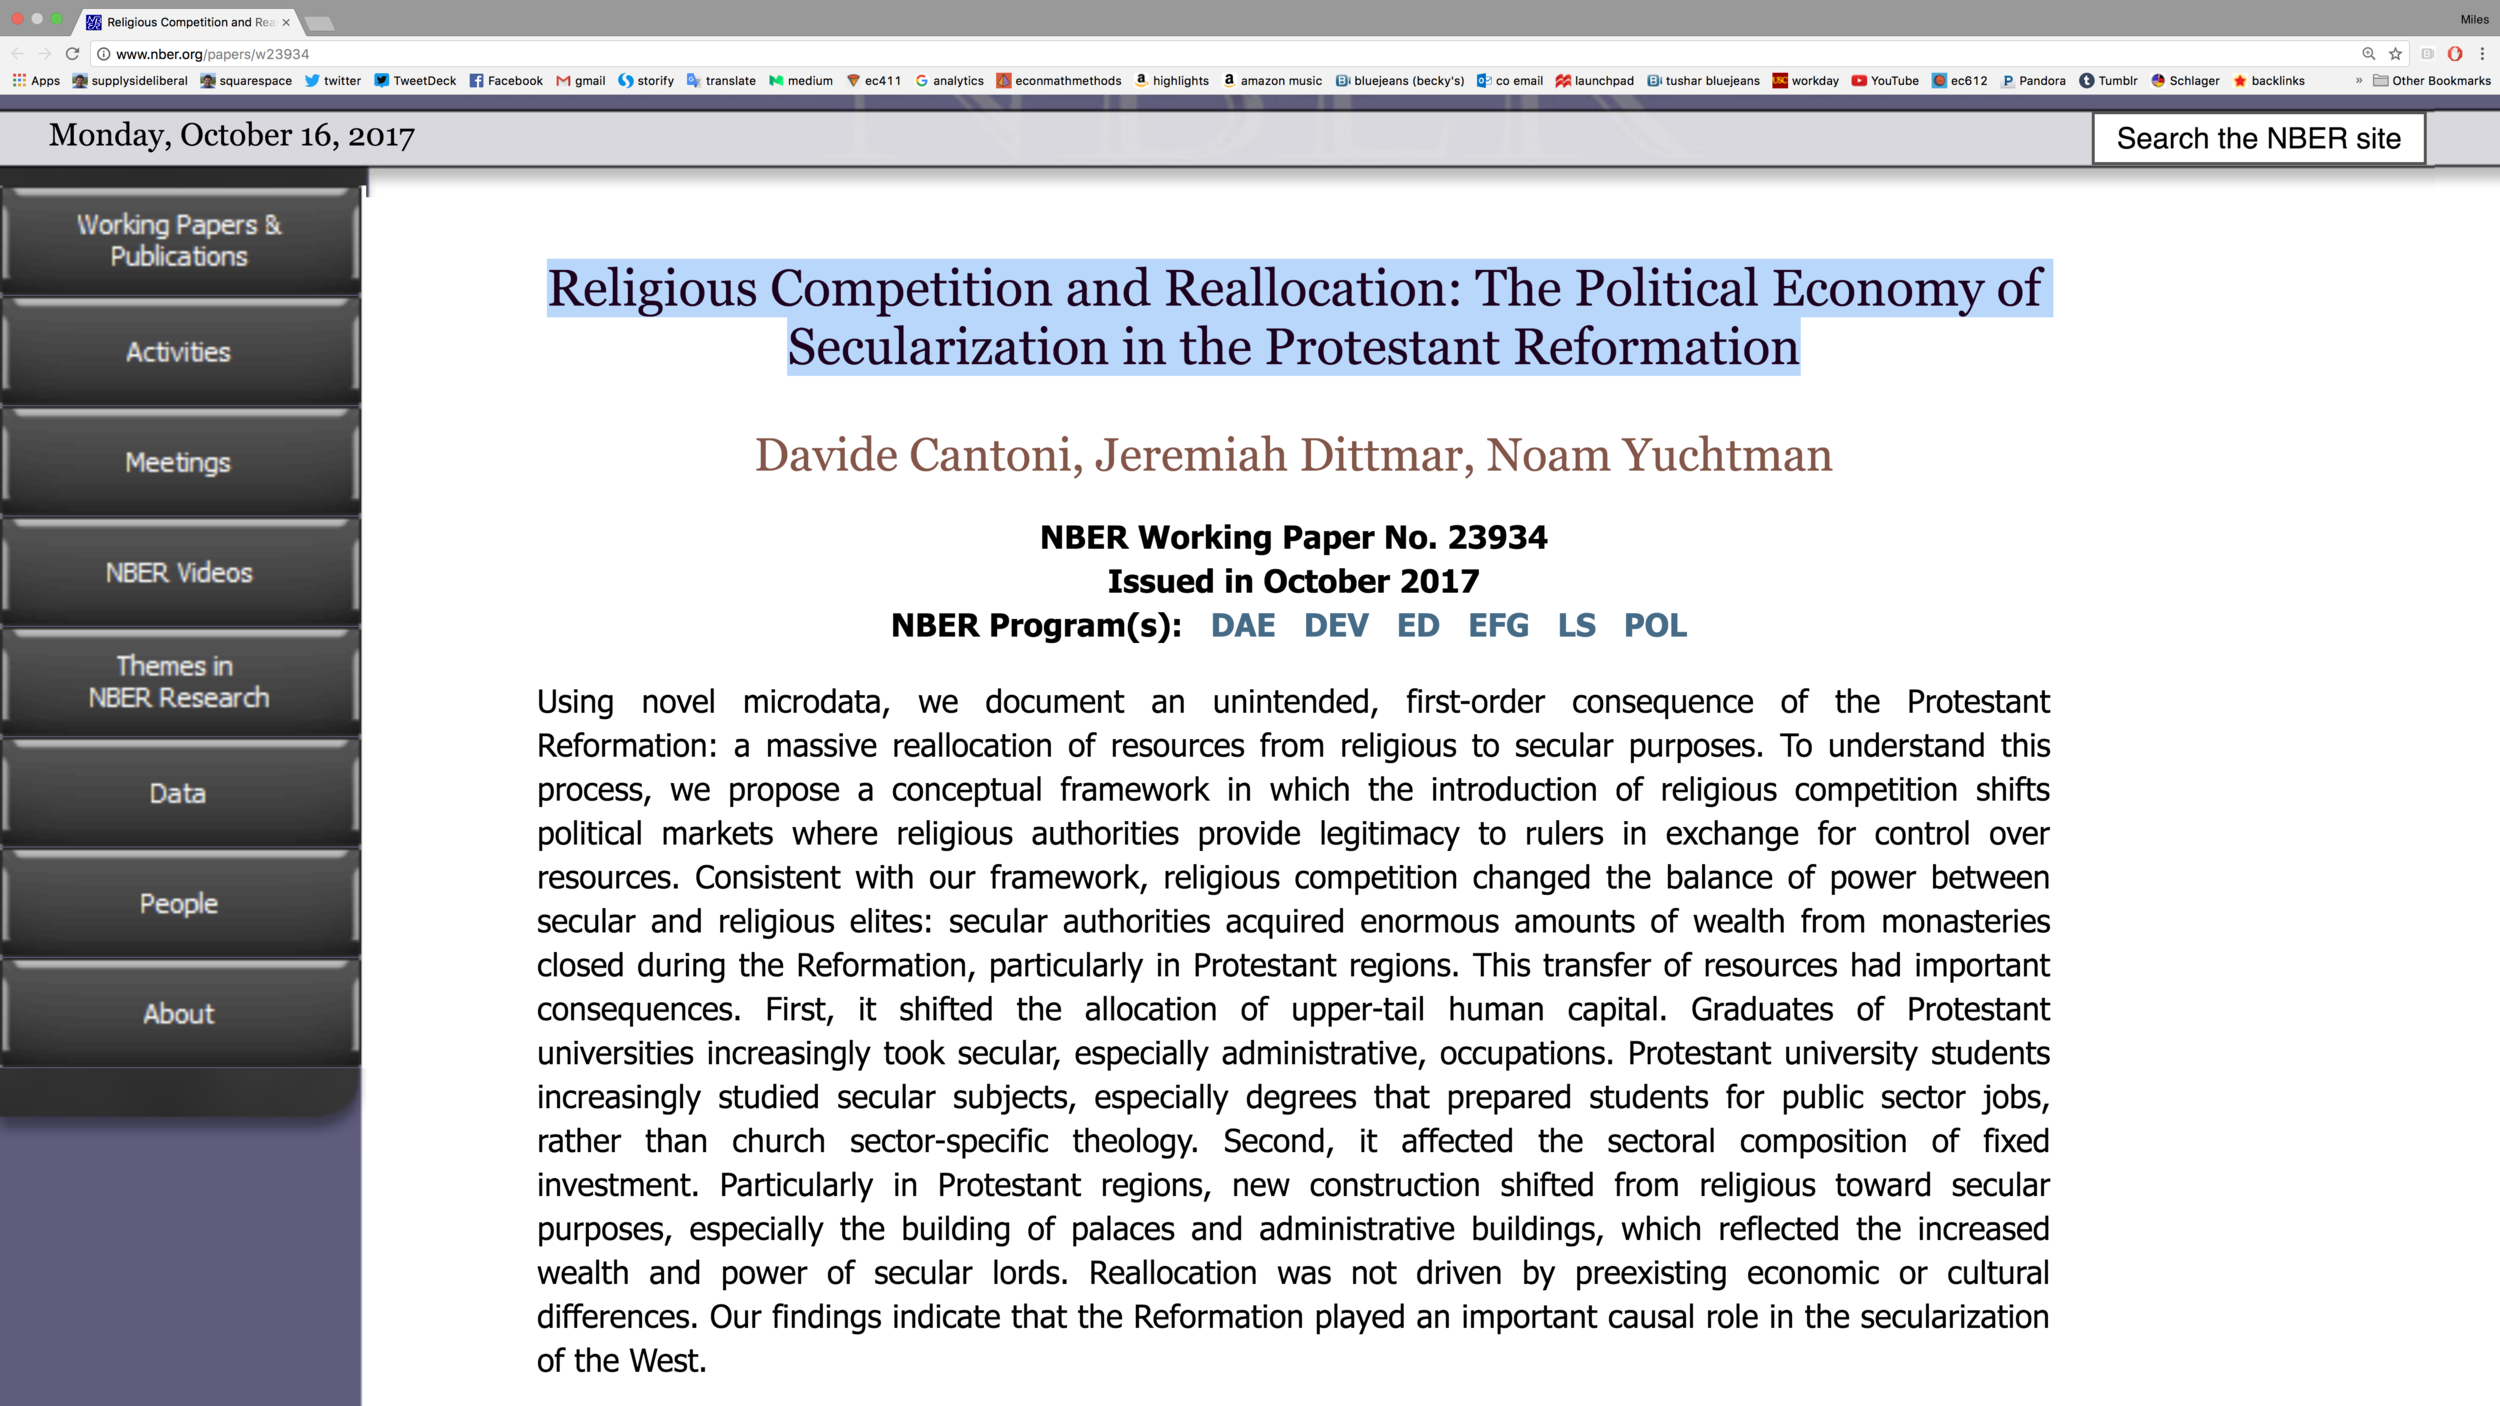 LInk to the abstract above on the NBER website